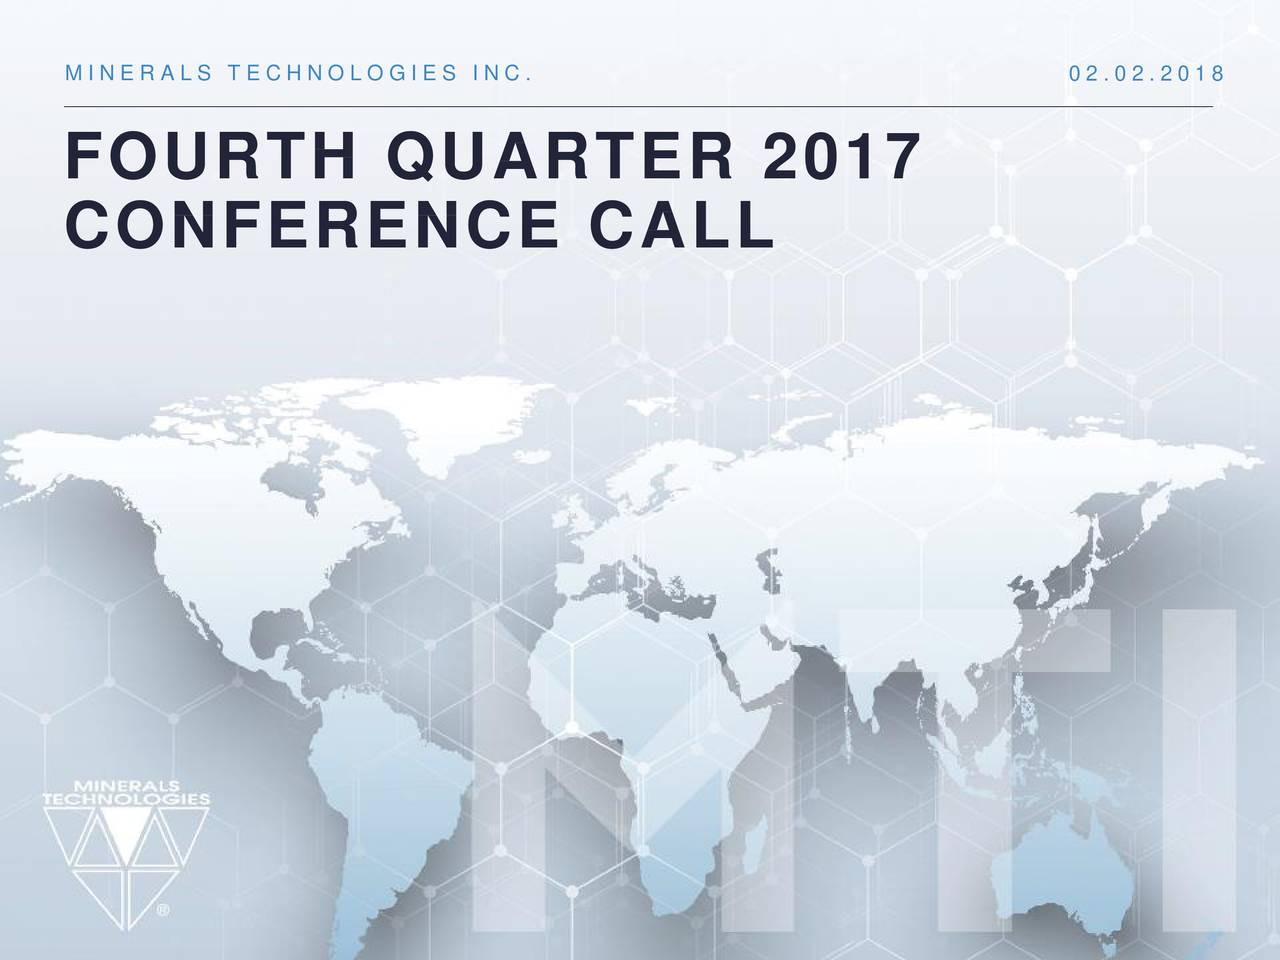 FOURTH QUARTER 2017 CONFERENCE CALL